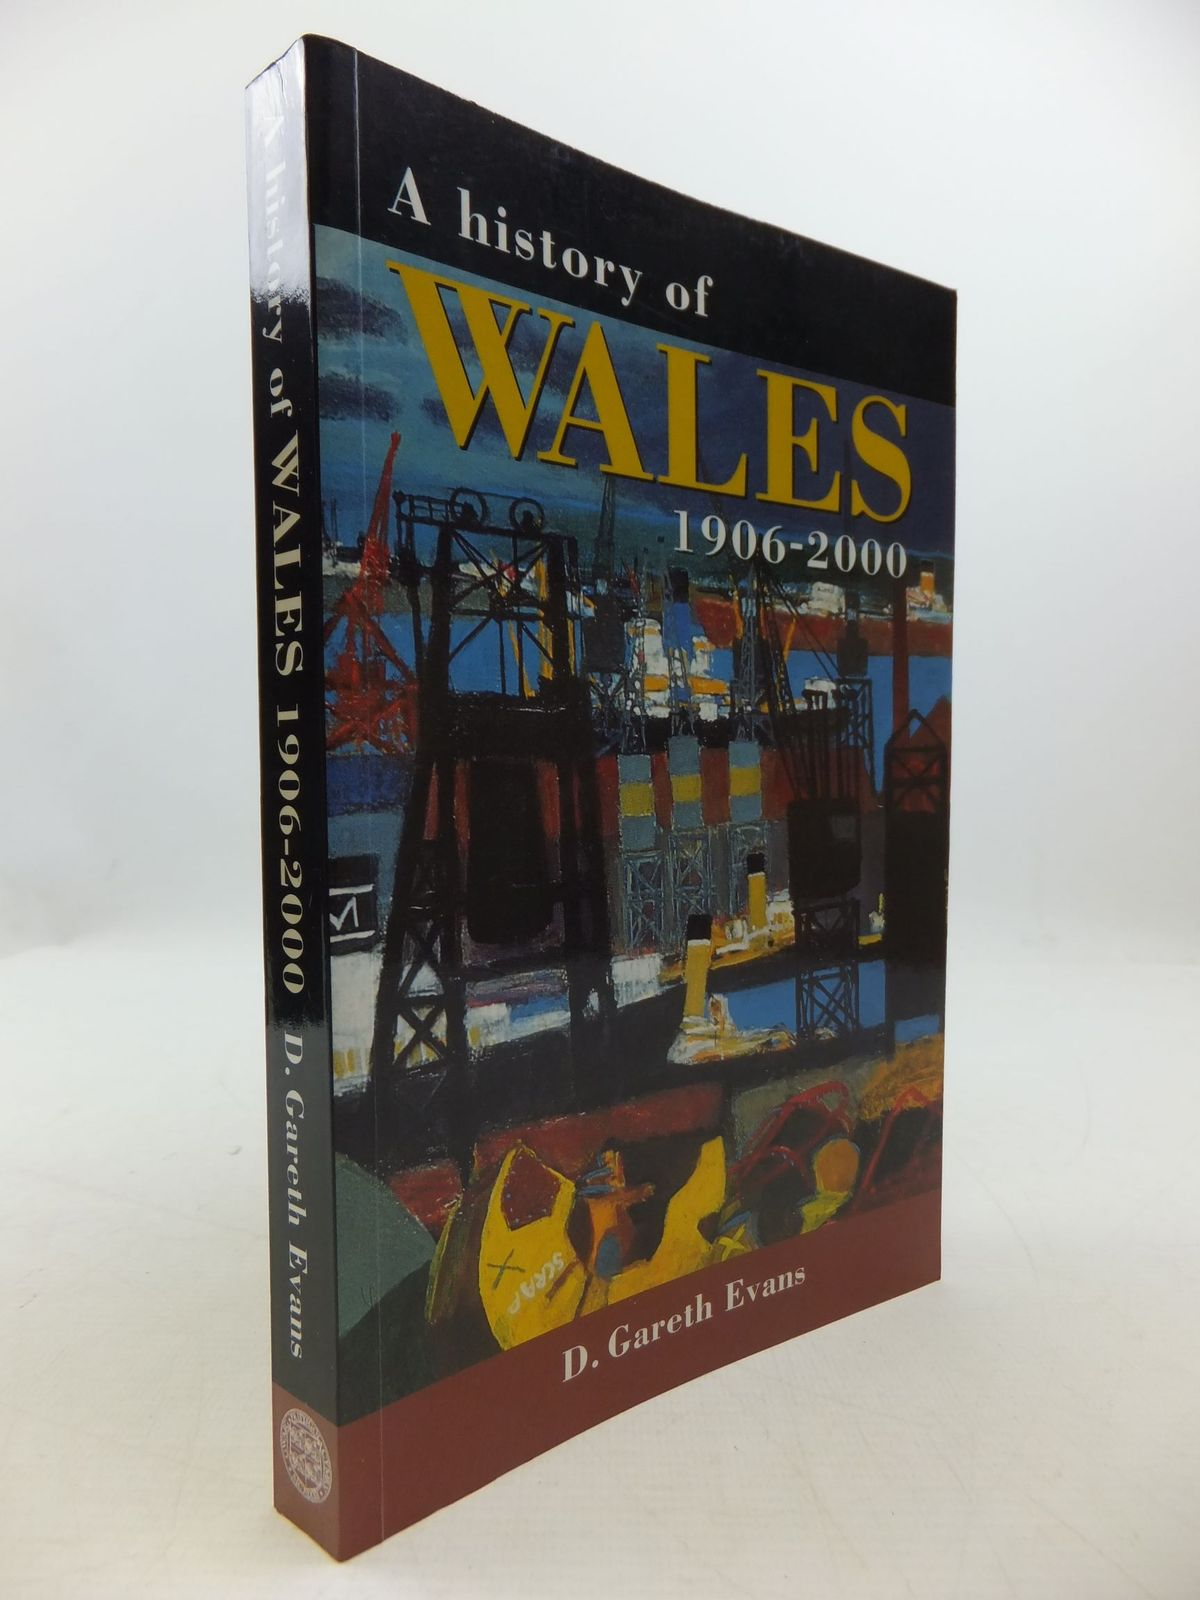 Photo of A HISTORY OF WALES 1906-2000 written by Evans, D. Gareth published by University of Wales (STOCK CODE: 1708362)  for sale by Stella & Rose's Books